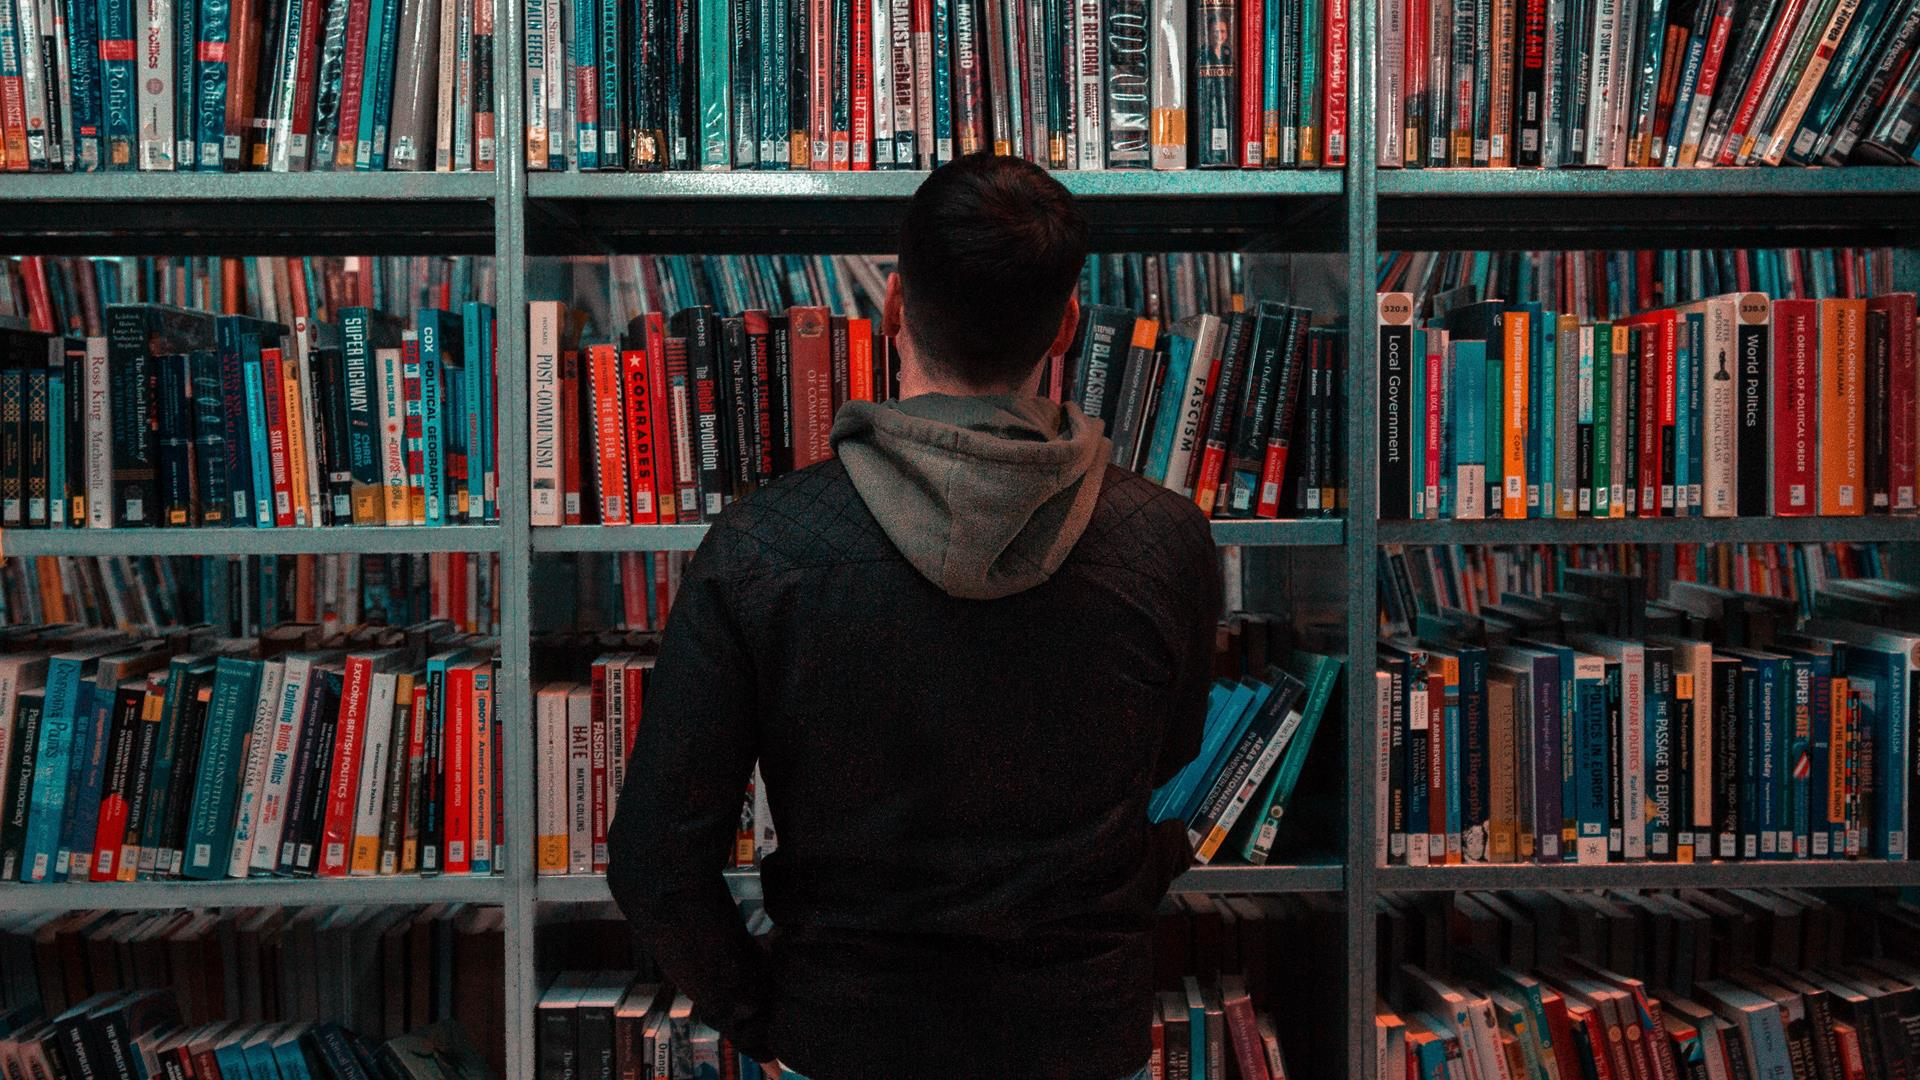 Matthew Feeney Nwkh Biblioteca Unsplash